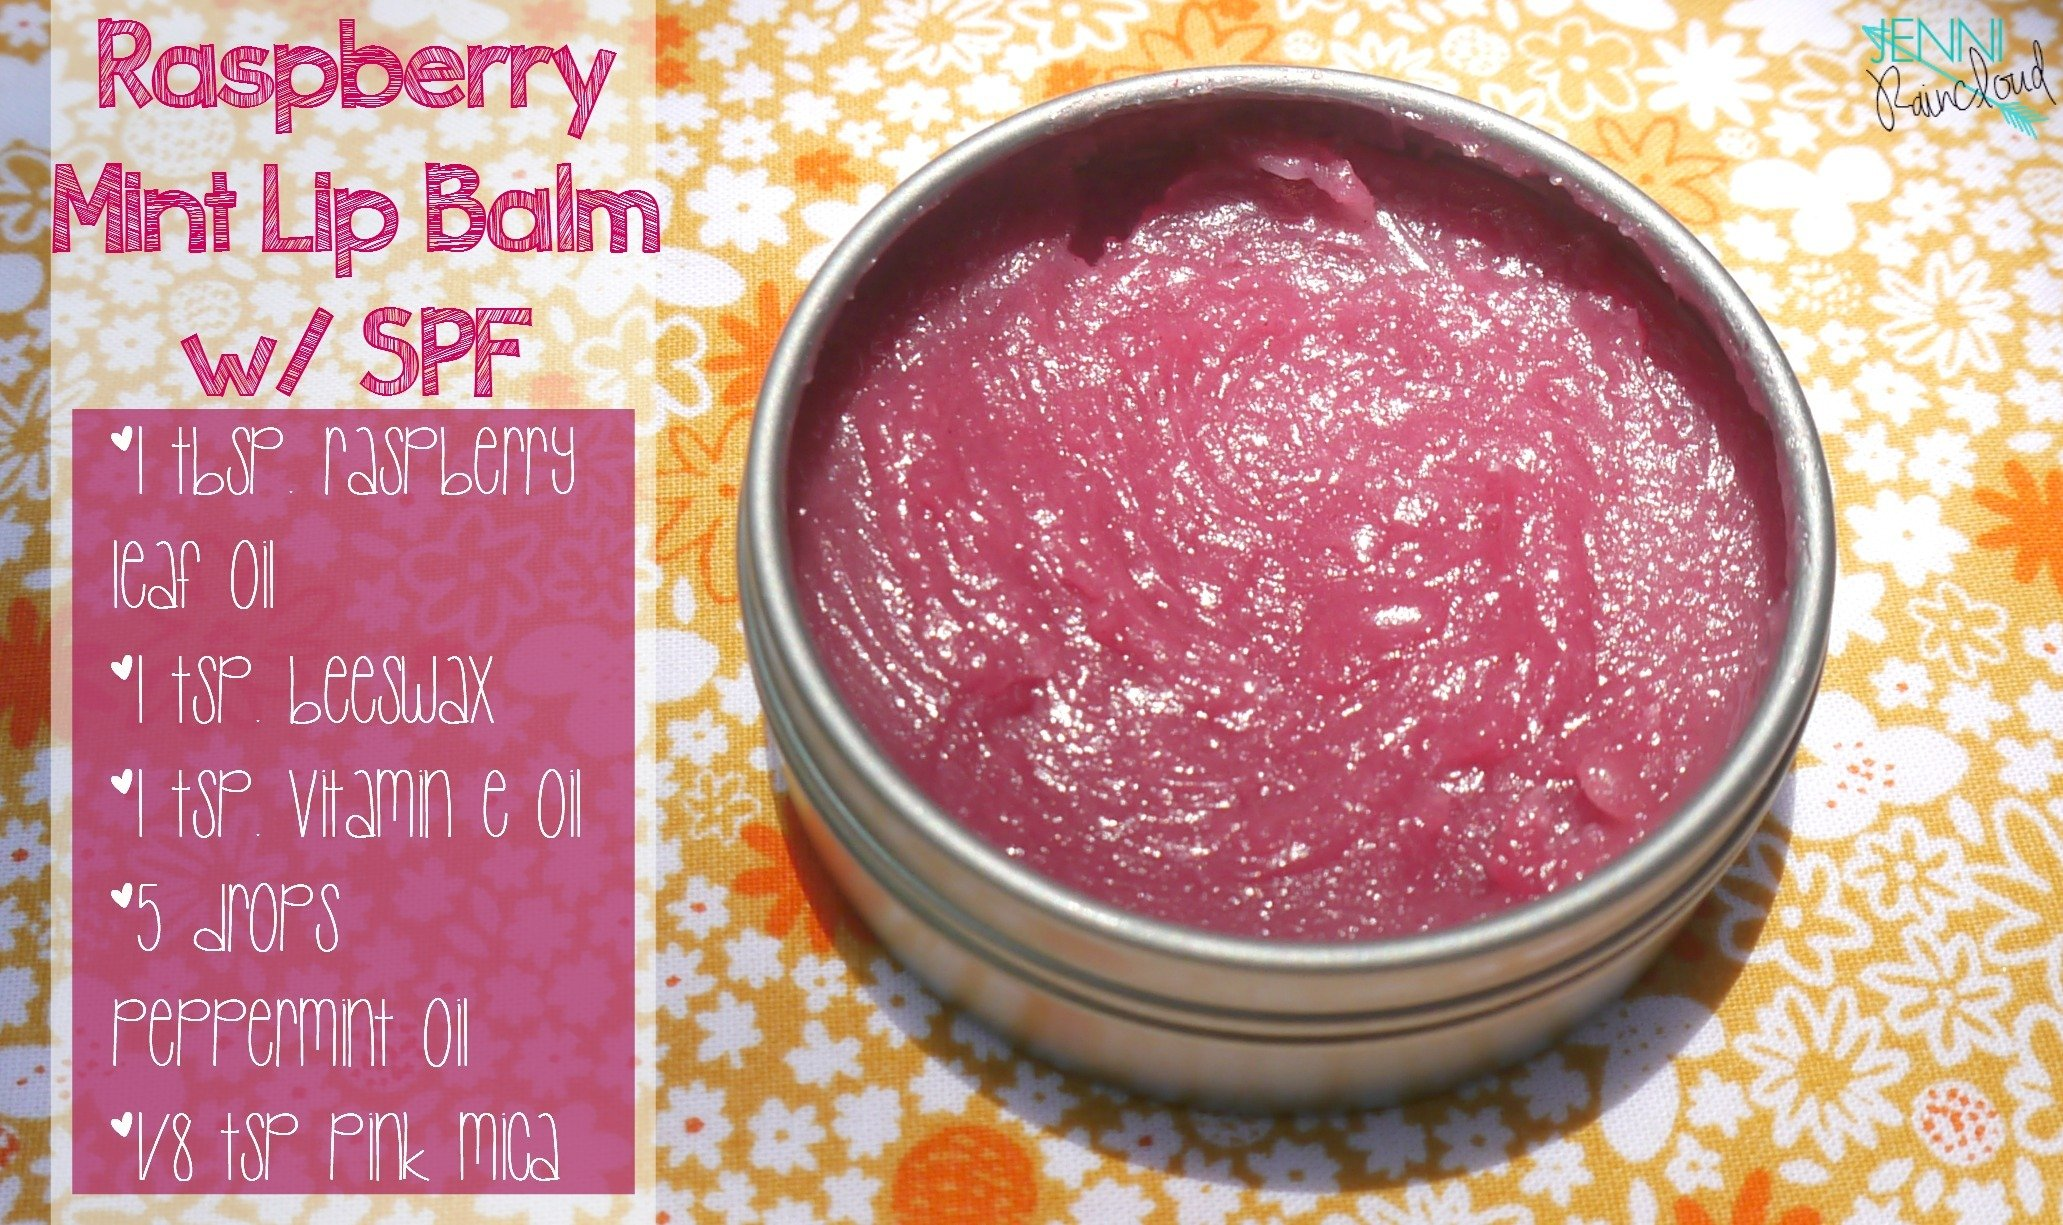 Raspberry Mint Lip Balm